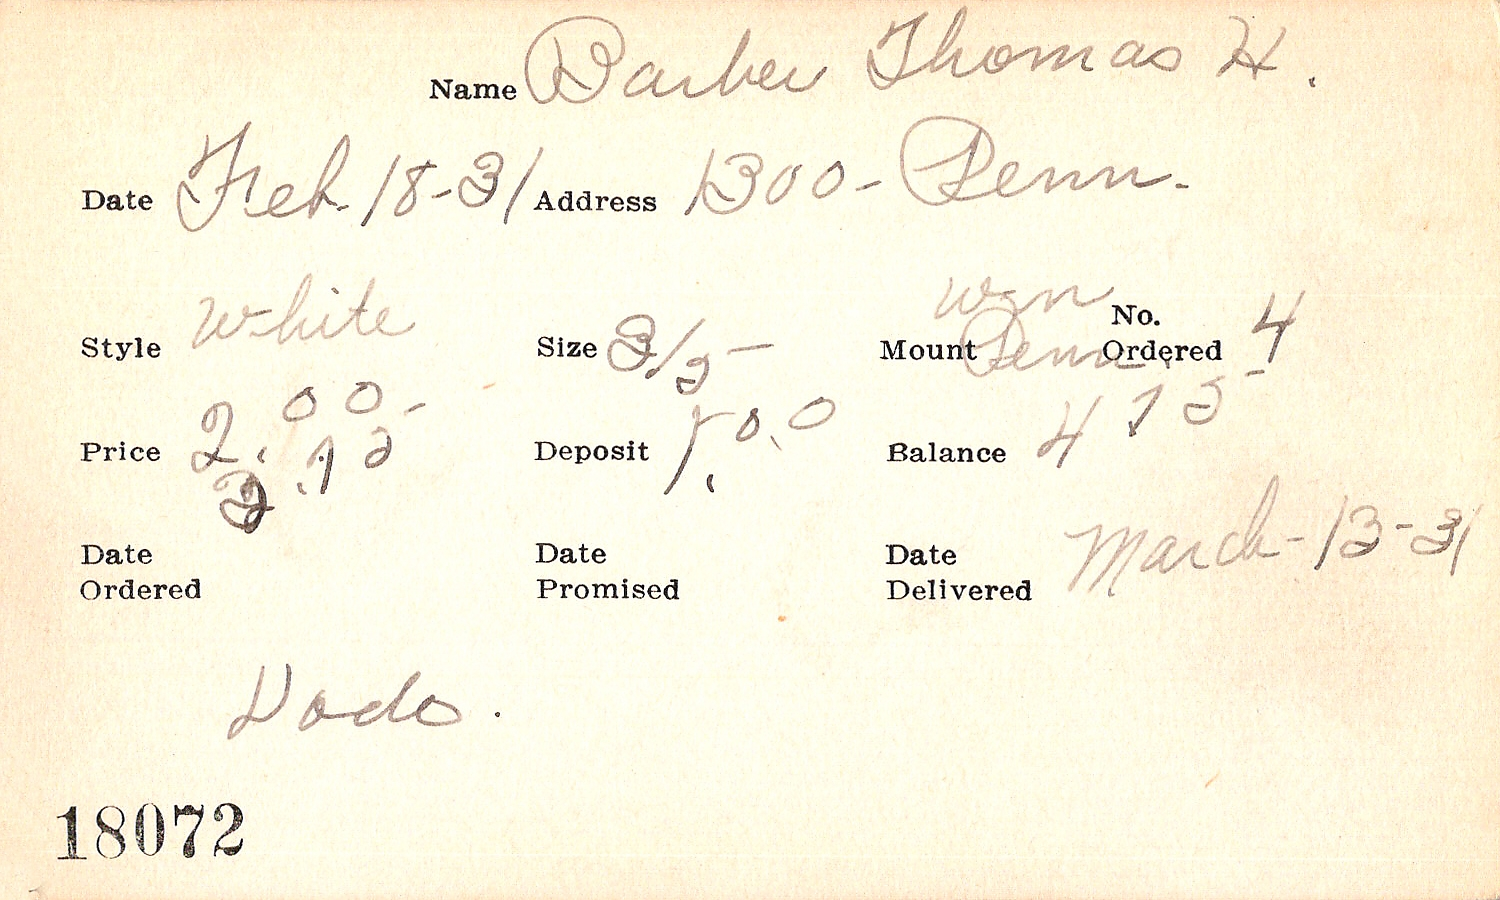 Index card for Thomas H. Barber